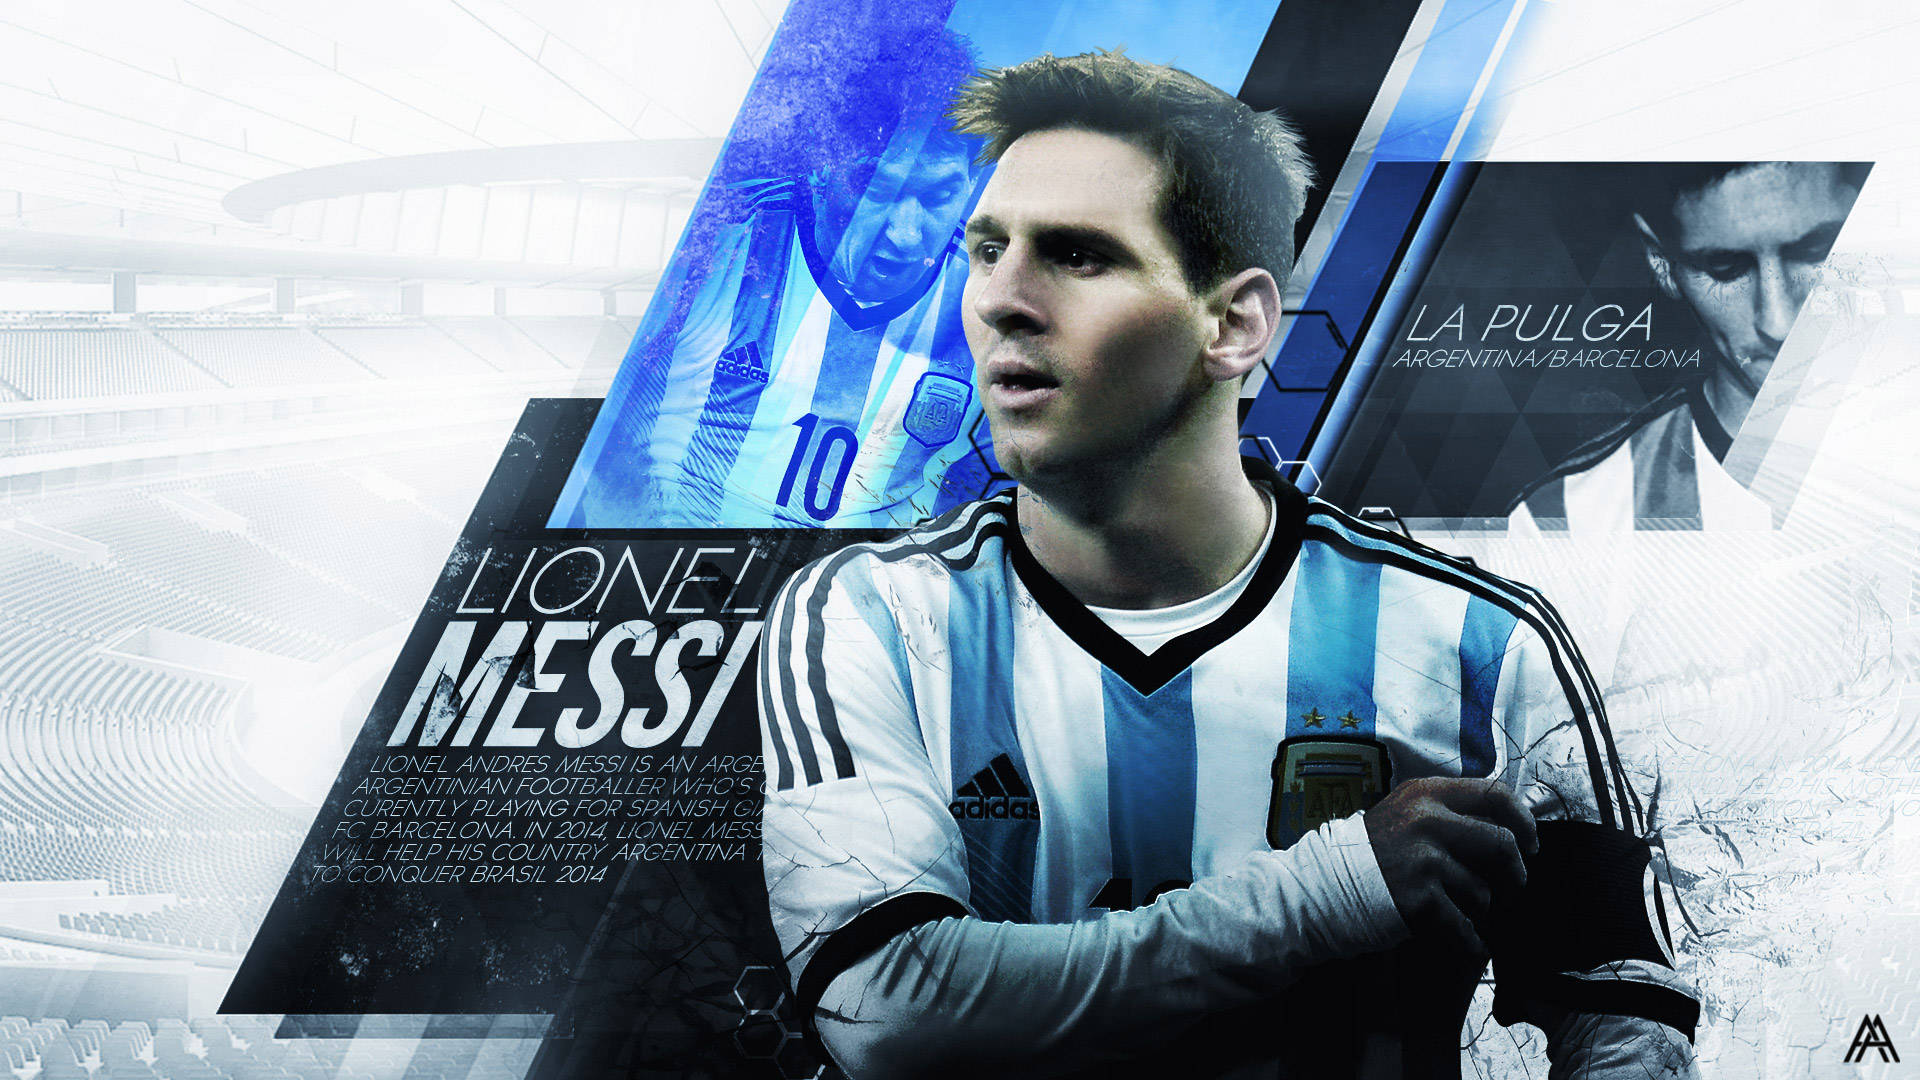 Football Wallpapers Hd Lionel Messi Hd Wallpapers The Nology